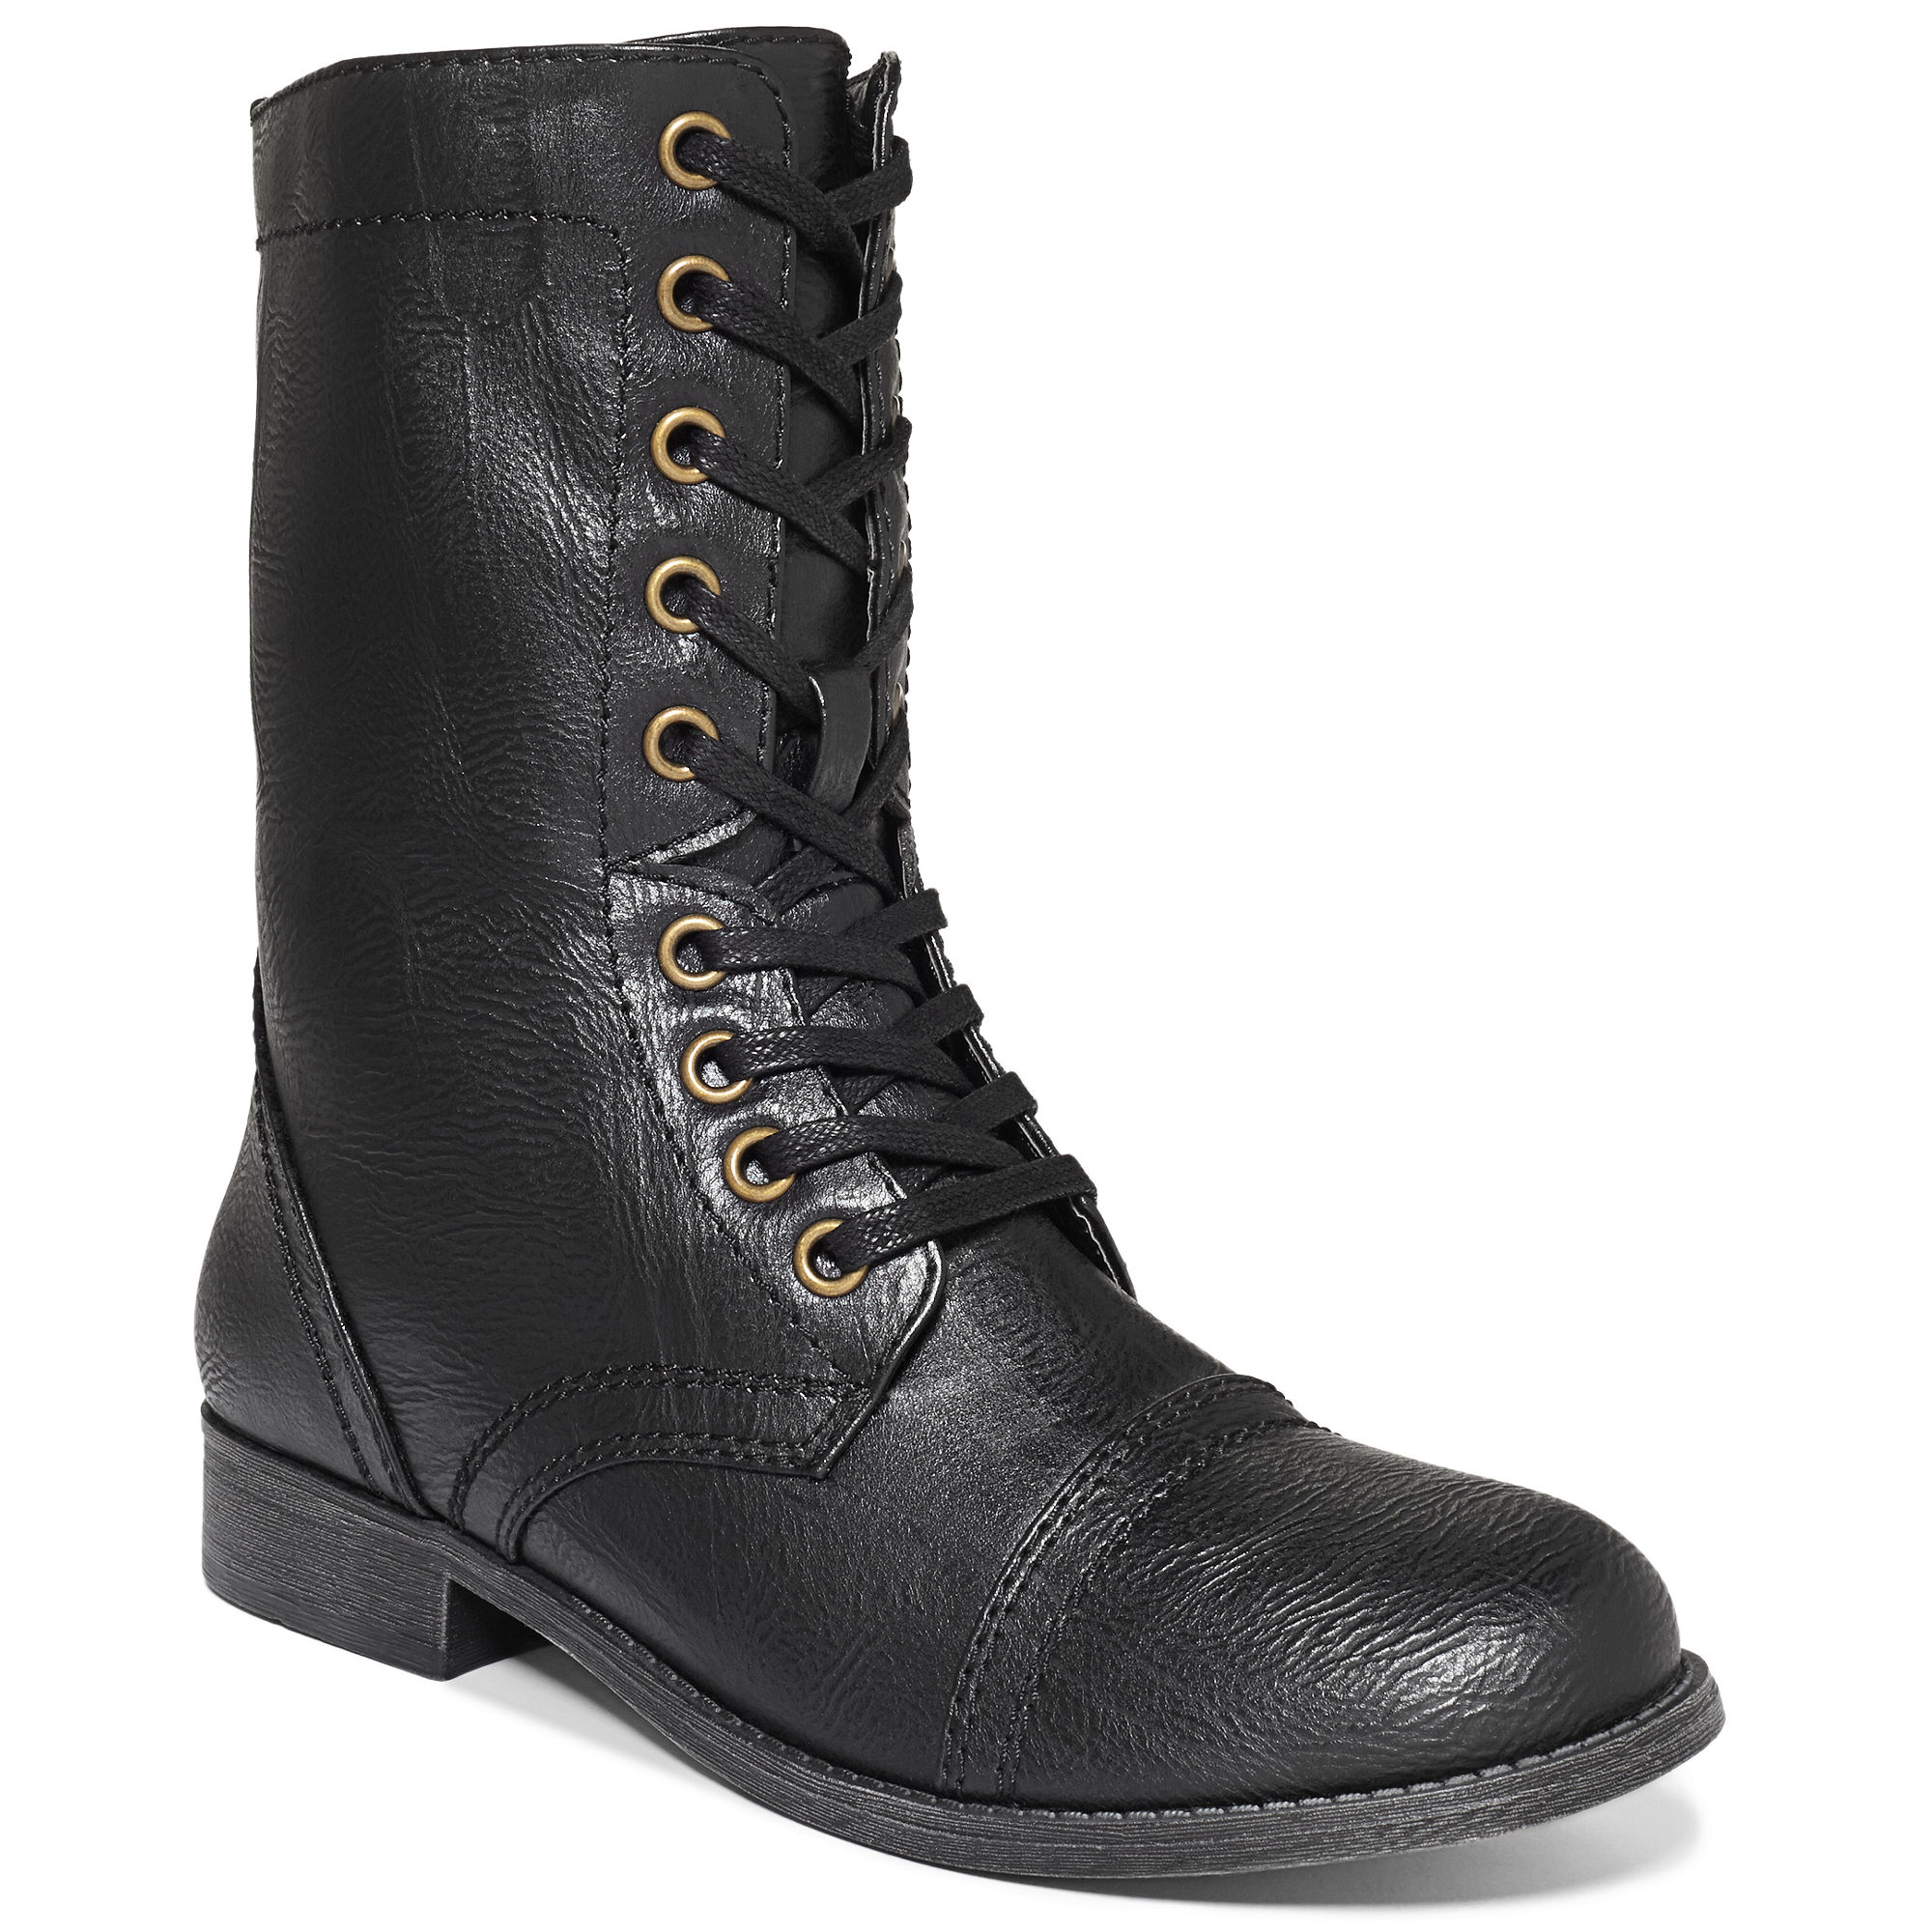 More Details Alexander McQueen Studded Lace-Up Cap-Toe Boot, Black Details Alexander McQueen smooth calf leather combat boot with silvertone studs.